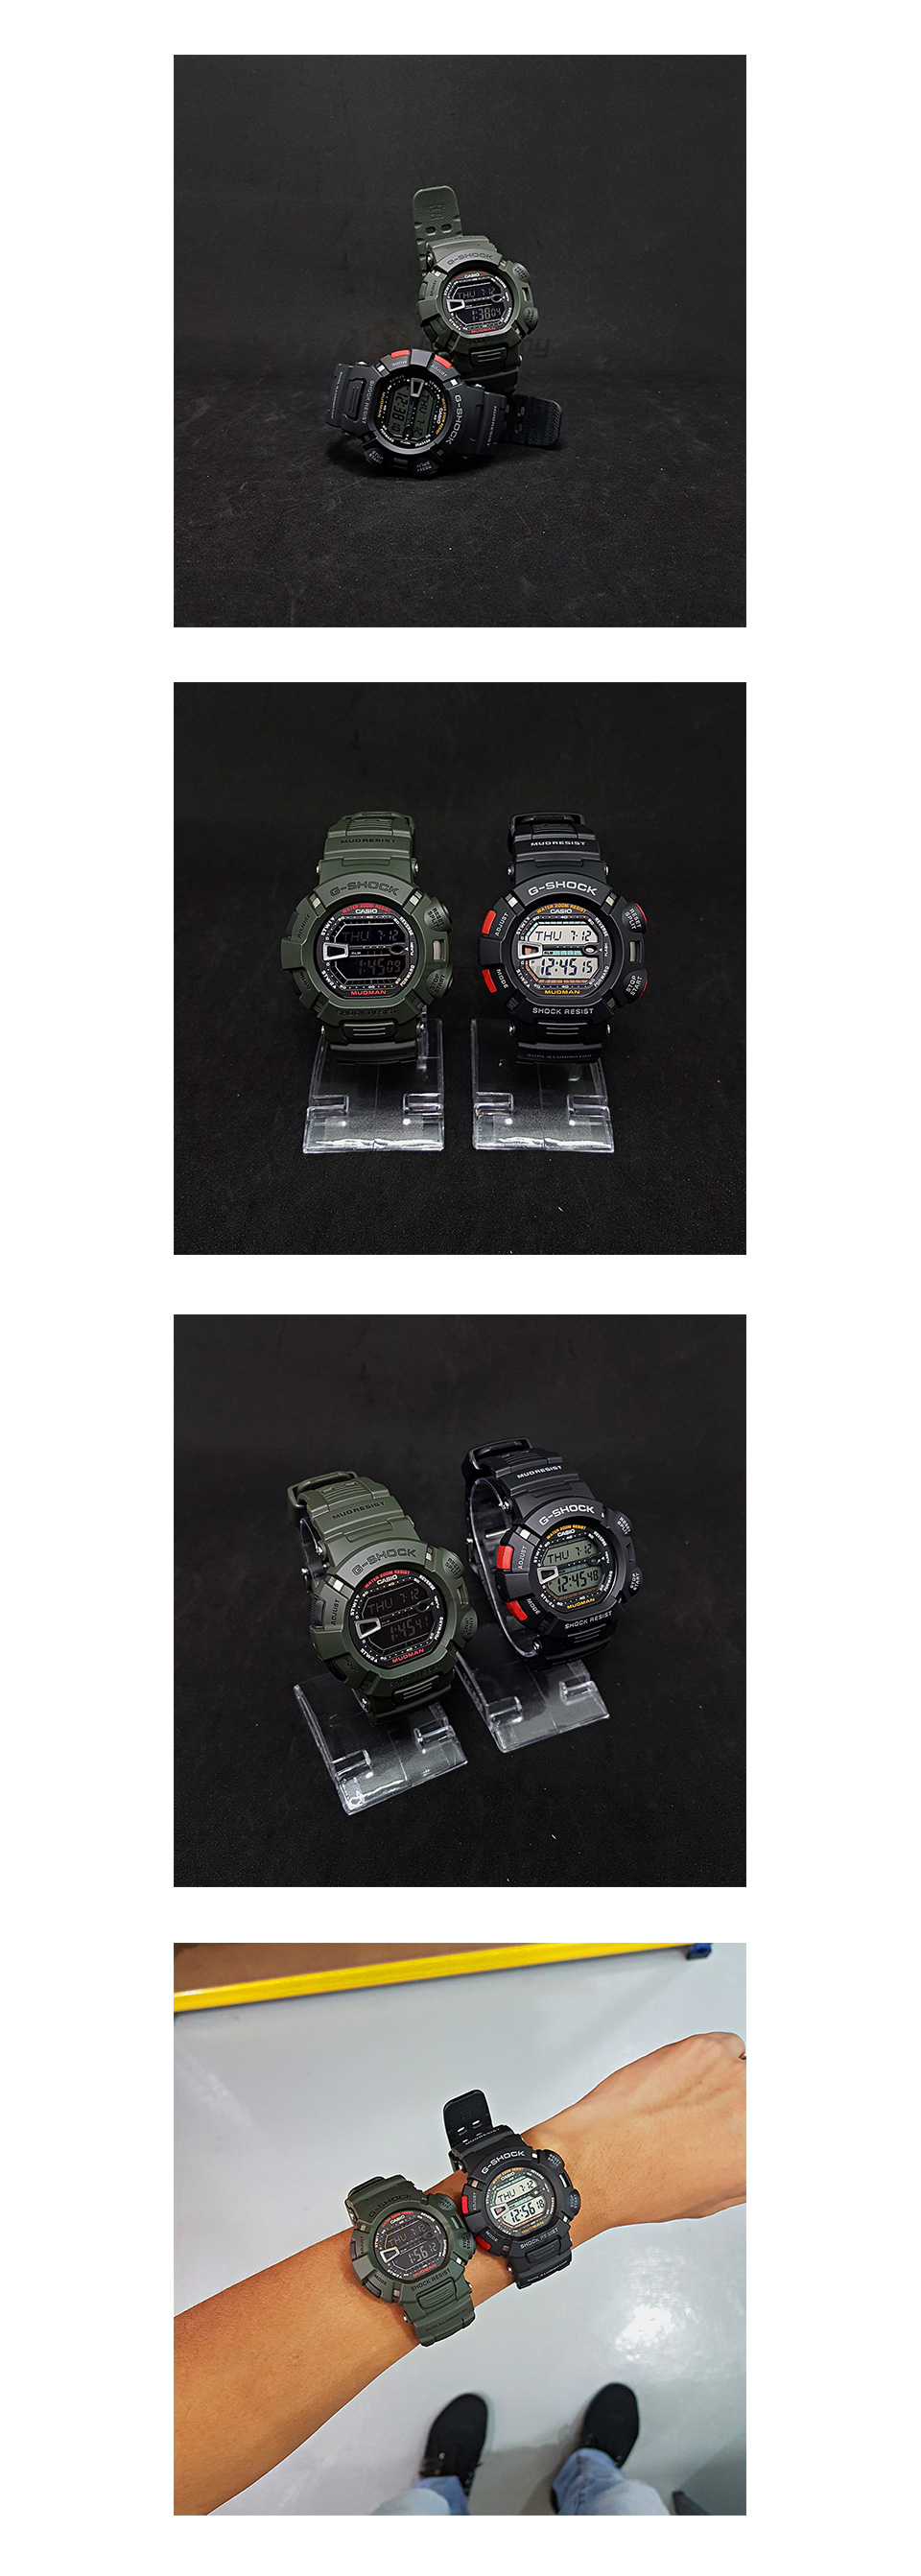 casio-g-shock-mudman-watch-mud-resist-motor-rally-sport-g-9000-1v-p